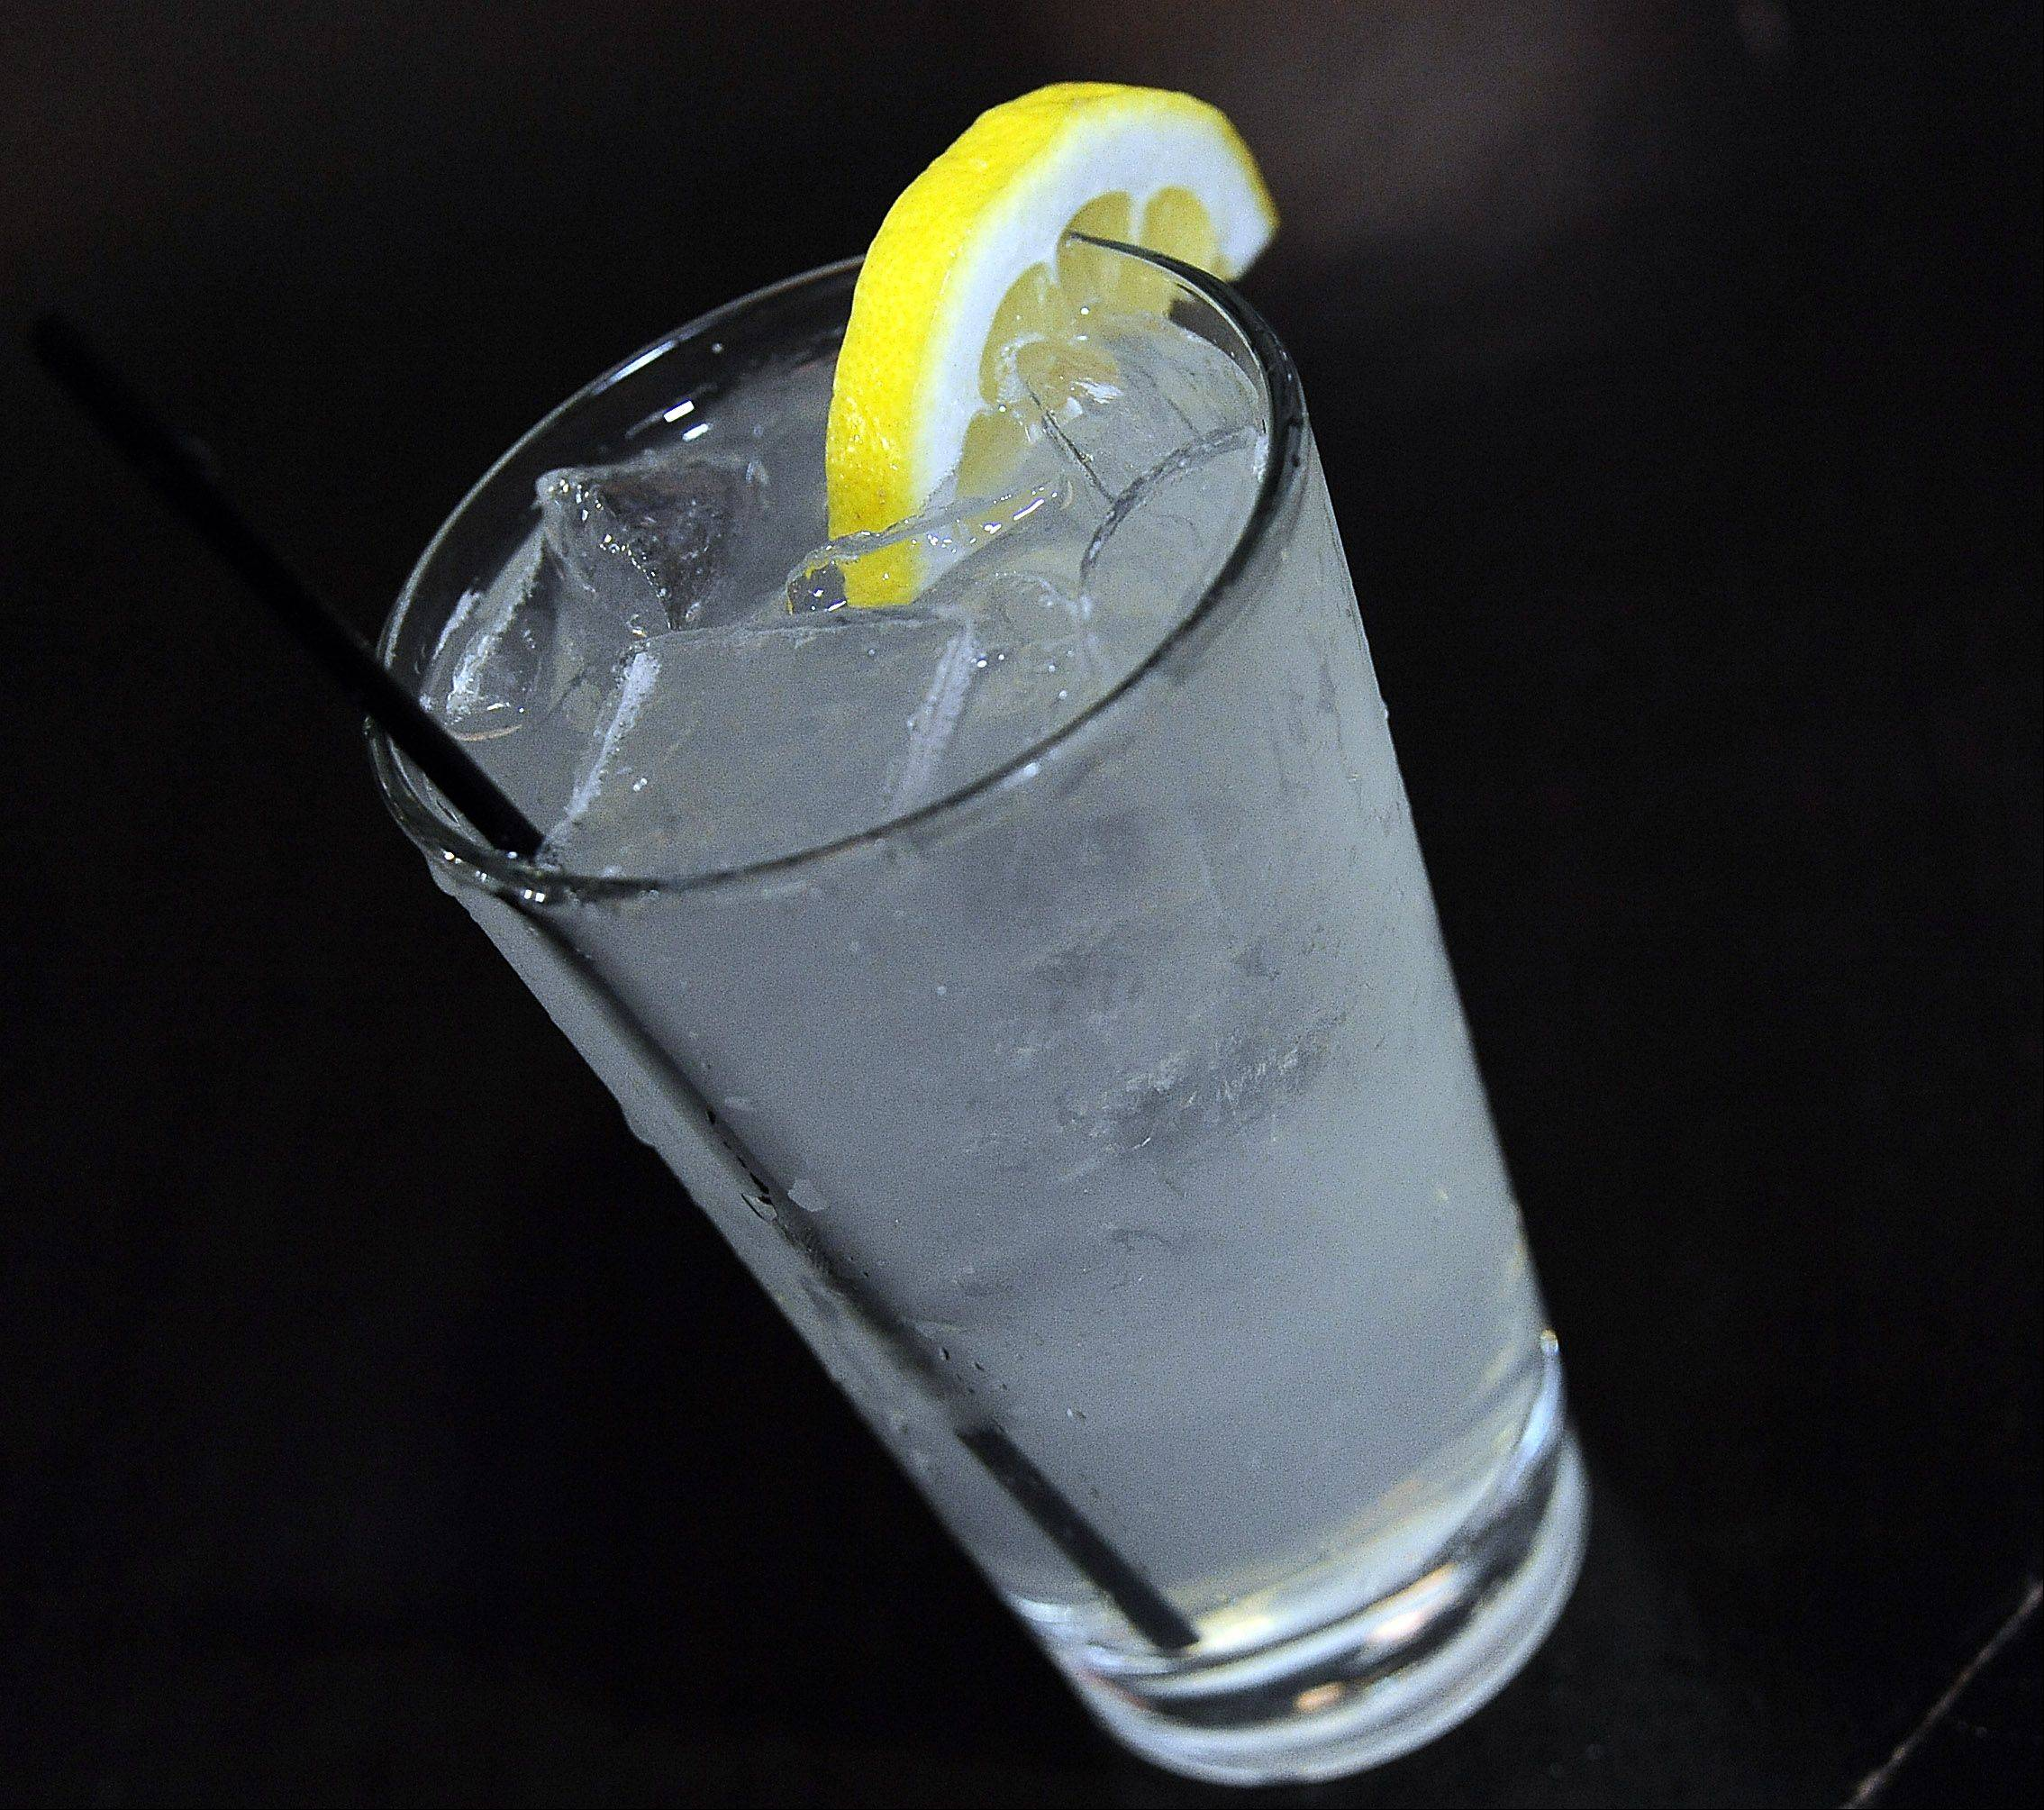 Cool down with the Refresher at Wickets Bar and Grill in Schaumburg.